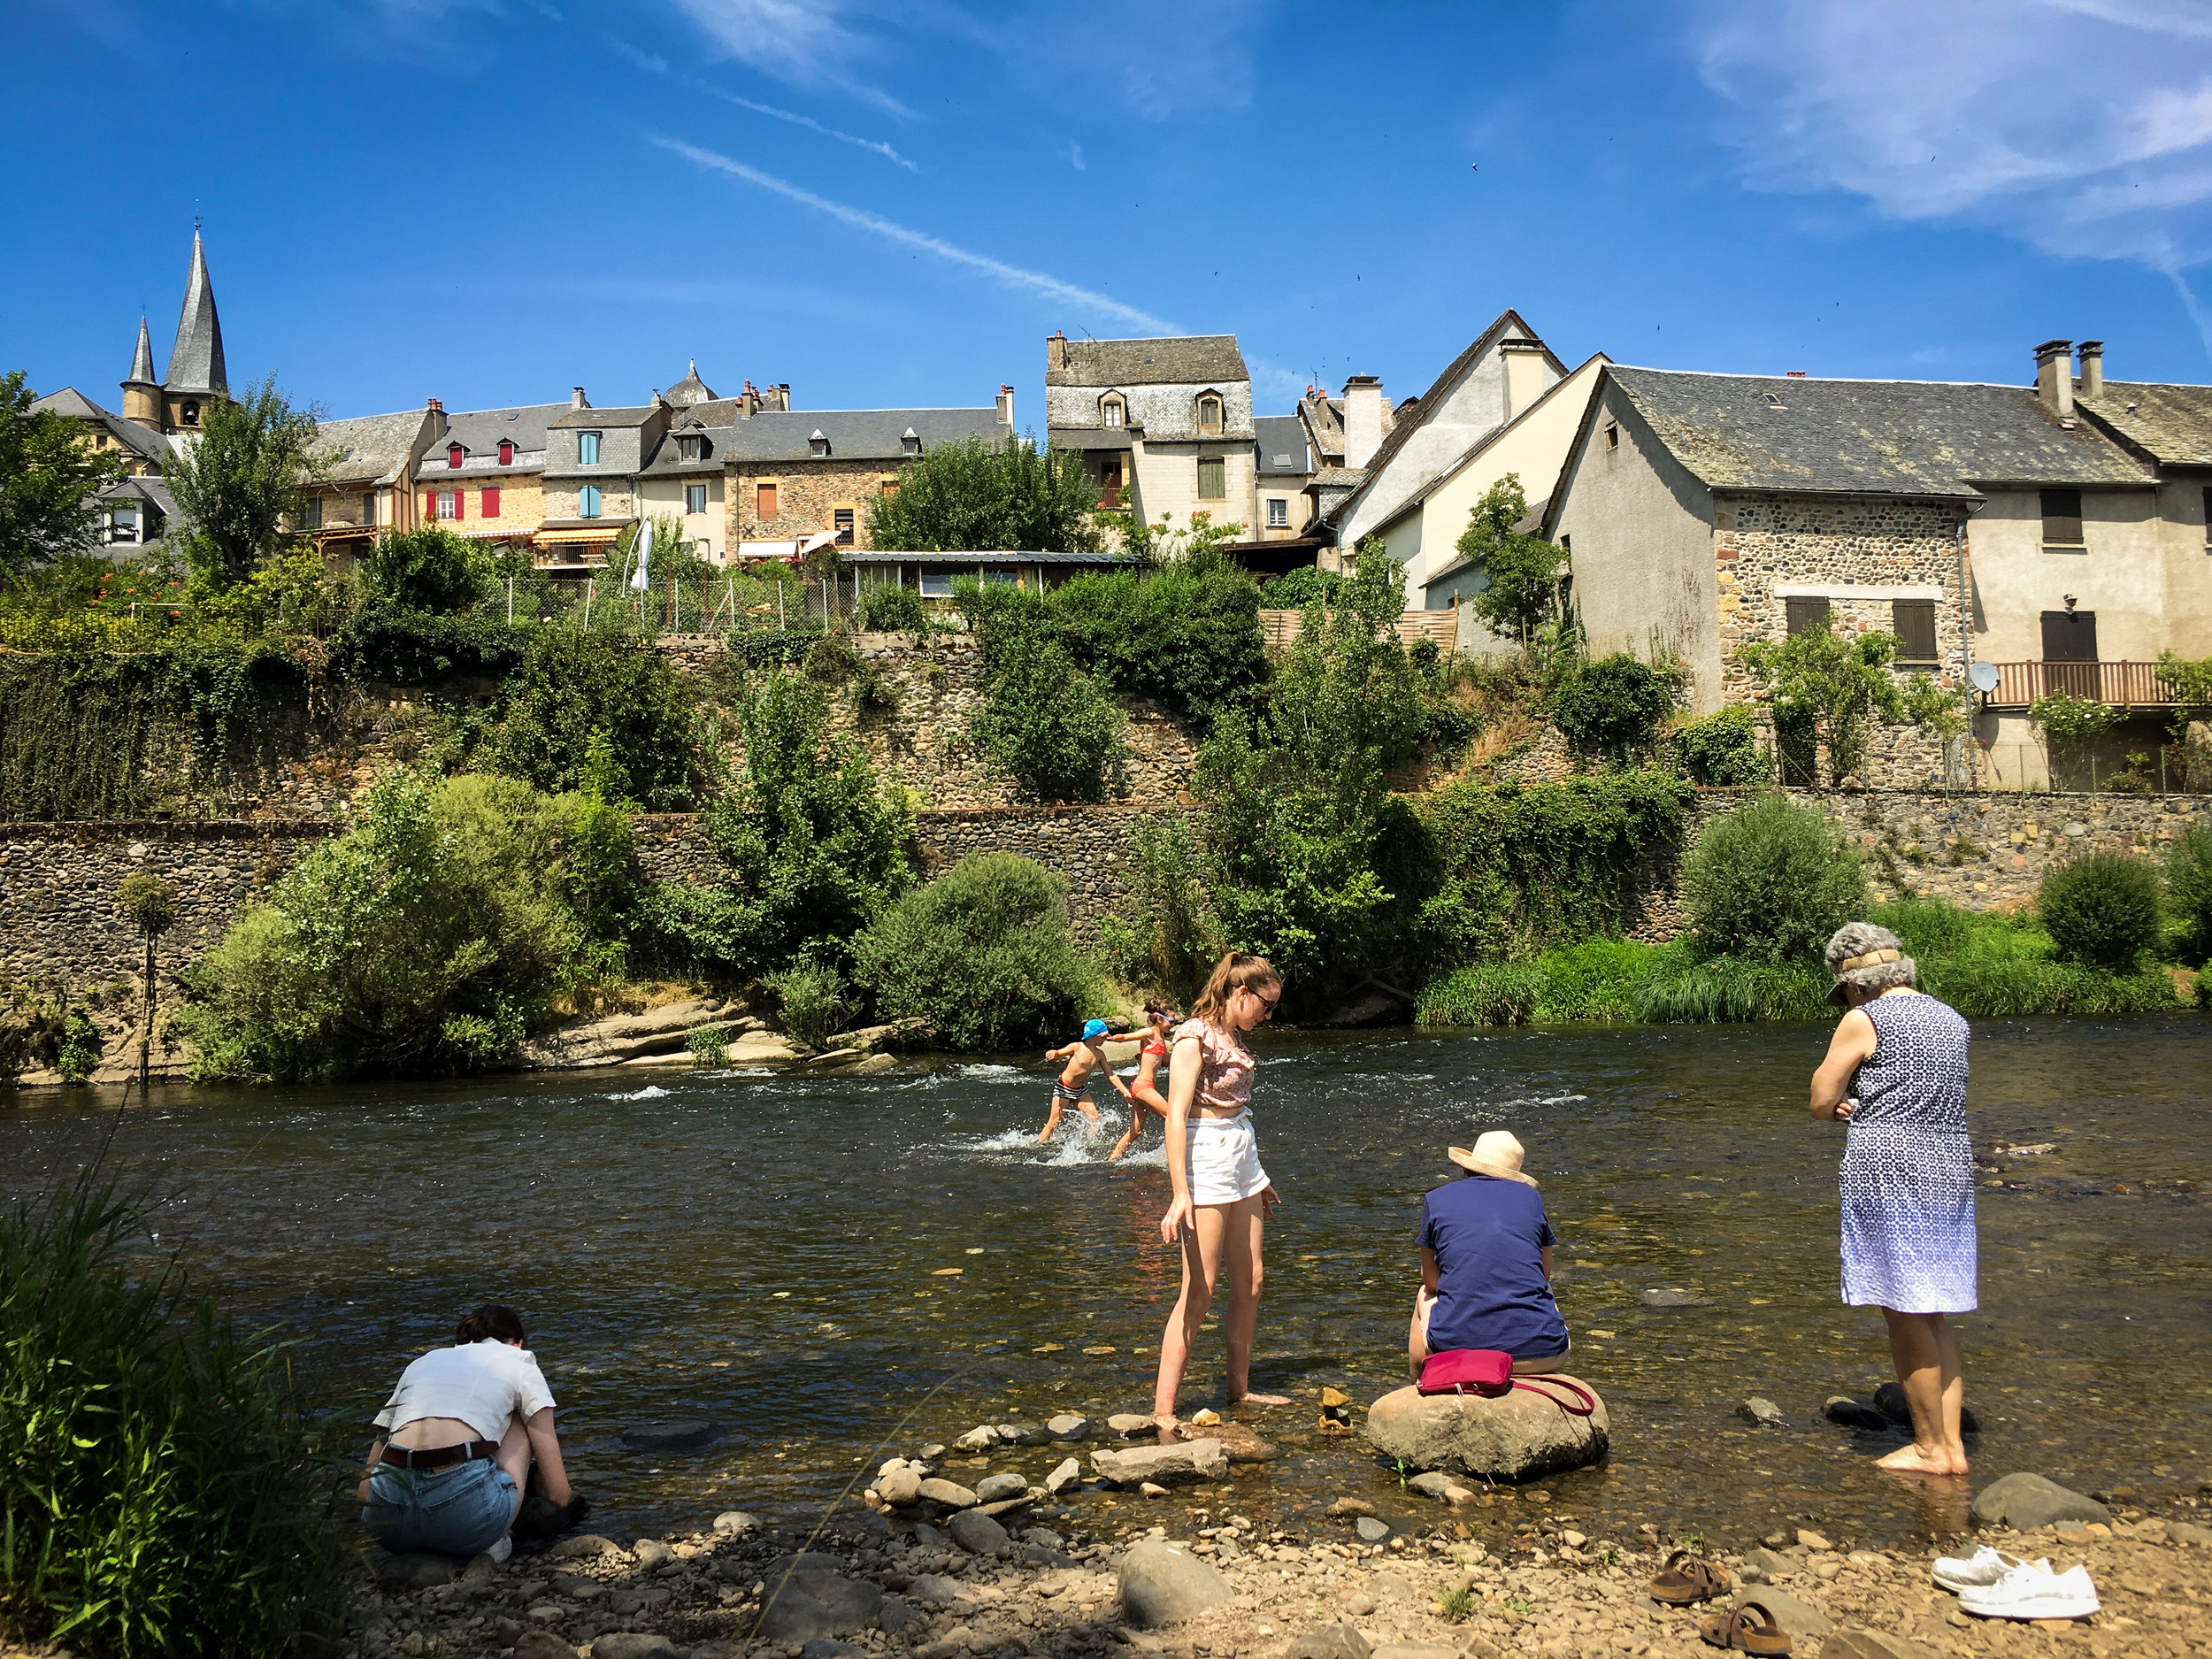 Kayla, Sophie, Kellie and Sarah having some fresh good times by the Lot river at Saint-Côme d'Olt on a very hot day. It is to note Saint-Côme d'Olt is one of the ten (yes 10 out of 90 or so in France!) most beautiful villages found in Aveyron. The twisted spire of the church is a masterpiece of carpentry and architecture.